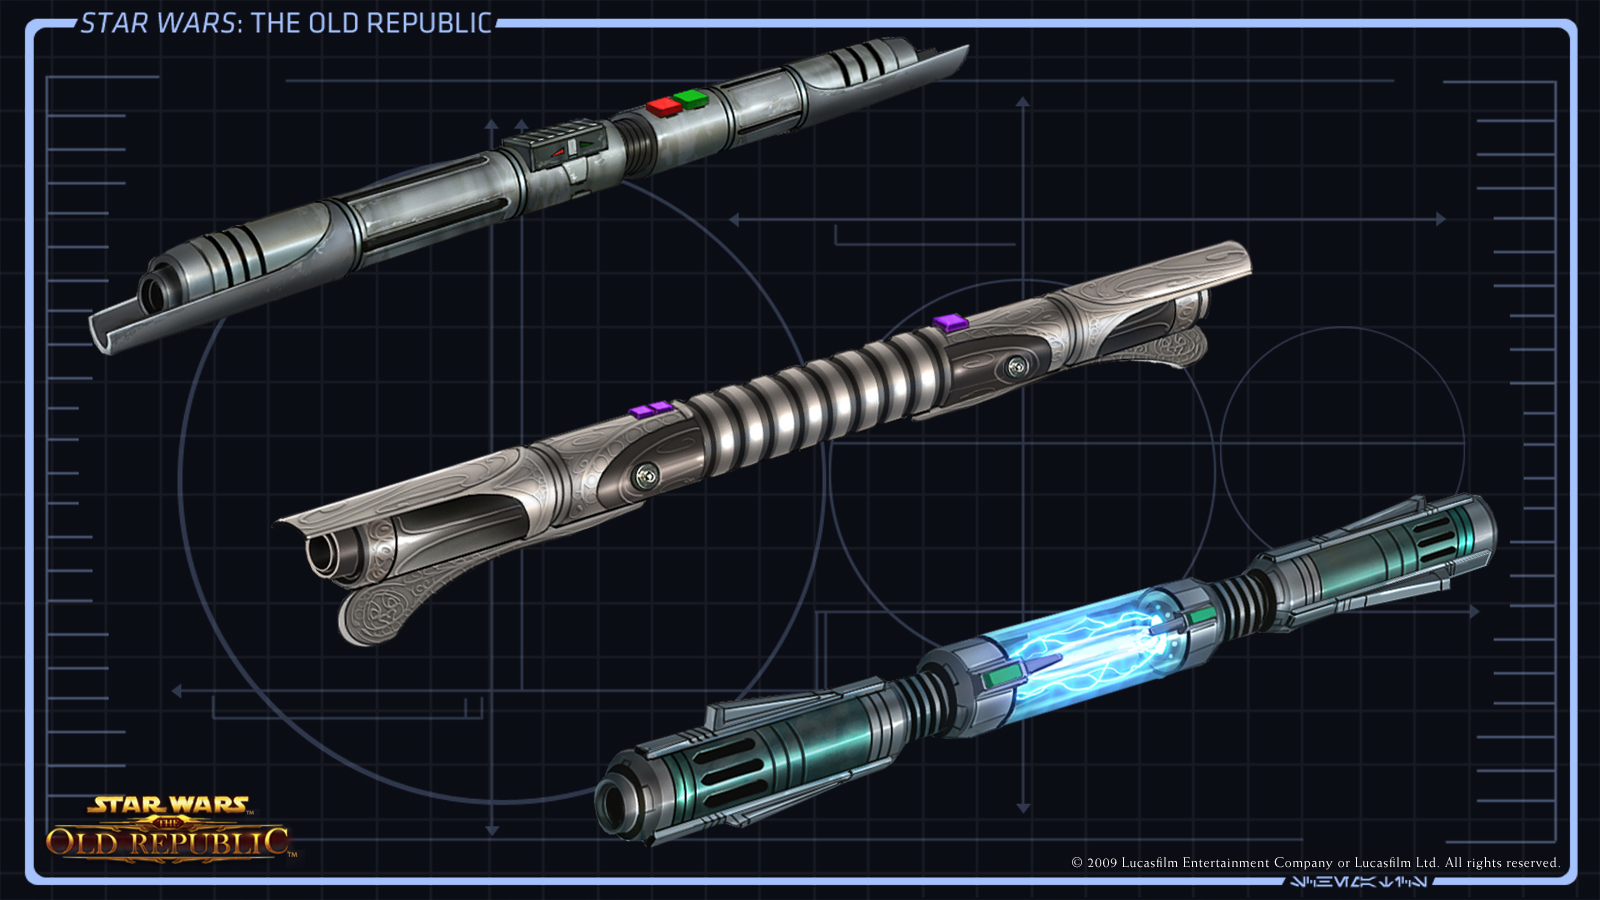 SWTOR Face Star Wars the Old Republic related news: SWTOR ...